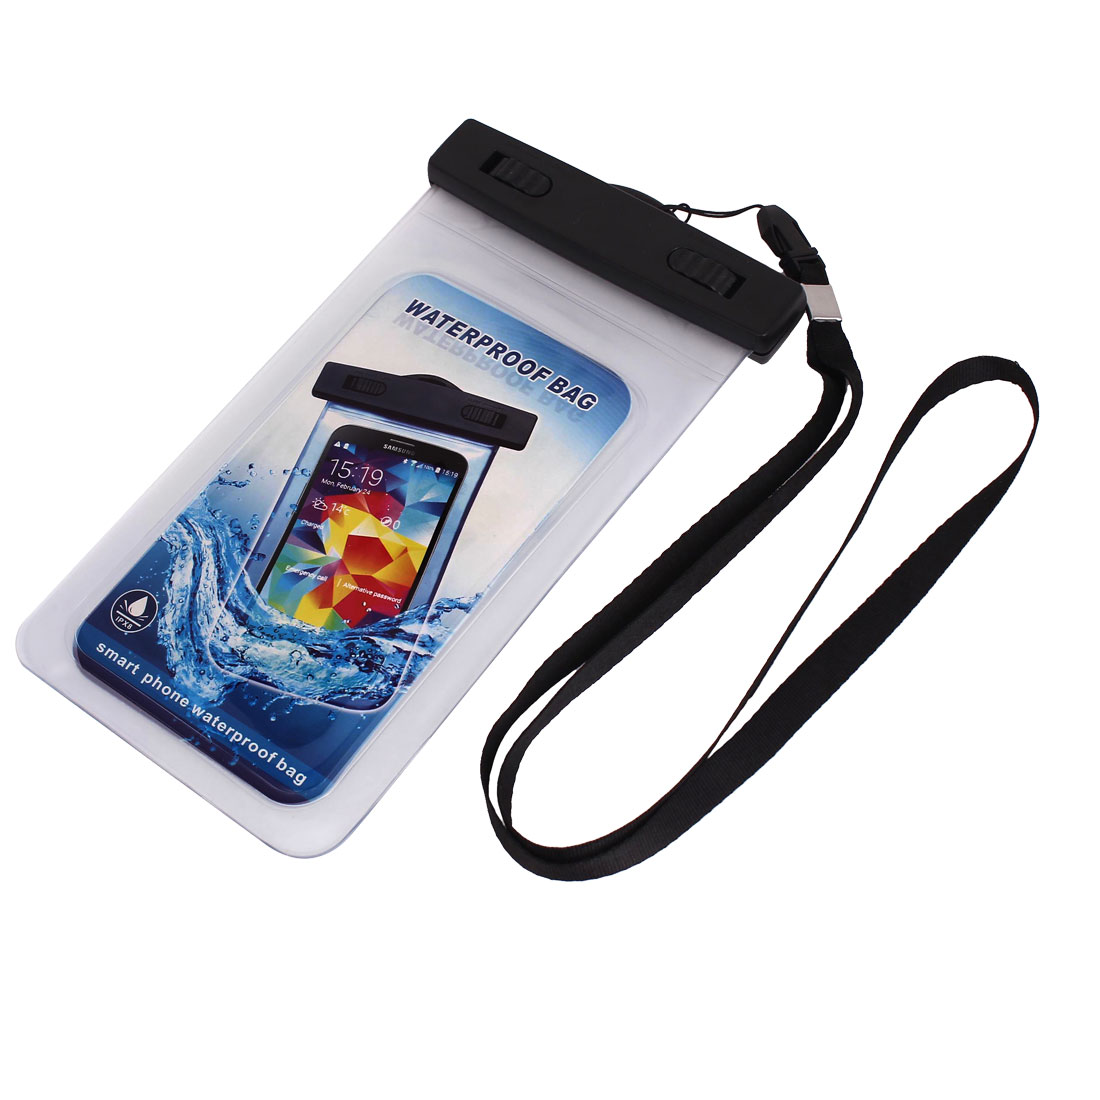 "Waterproof Bag Holder Pouch Clear for 5.5"" Mobile Phone w Neck Strap"